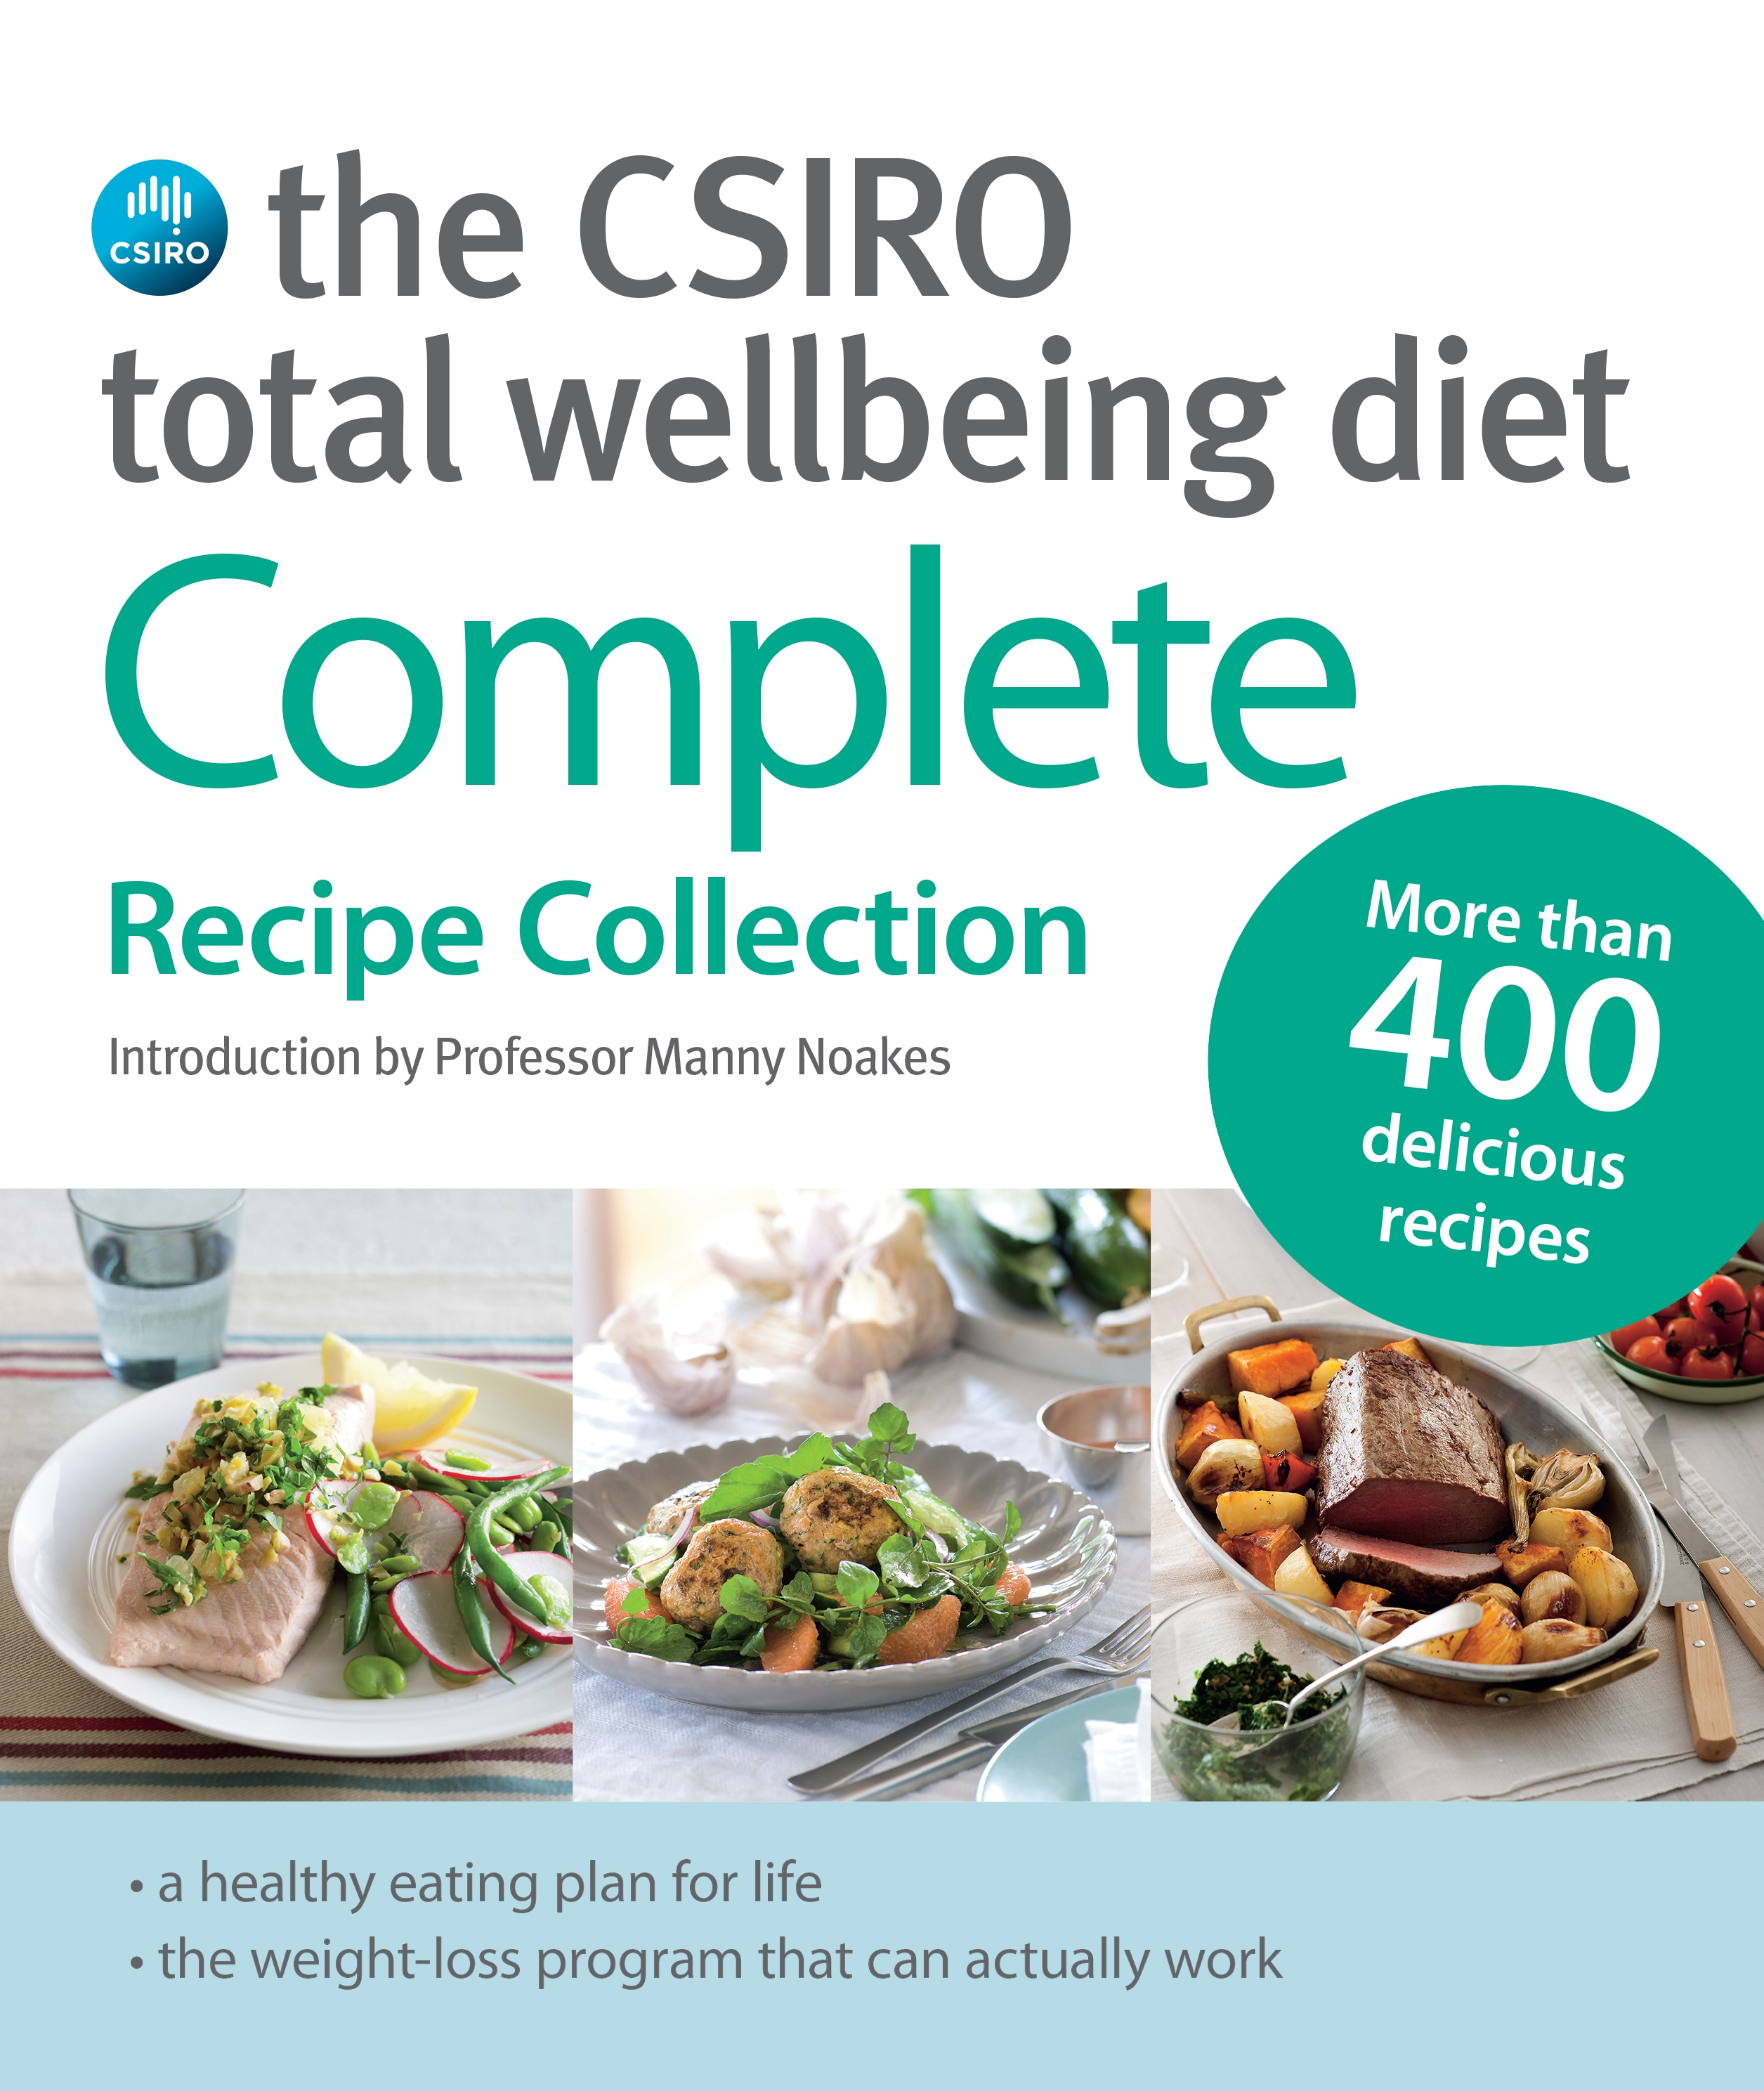 The csiro total wellbeing diet by manny noakes penguin books australia hi res cover forumfinder Gallery